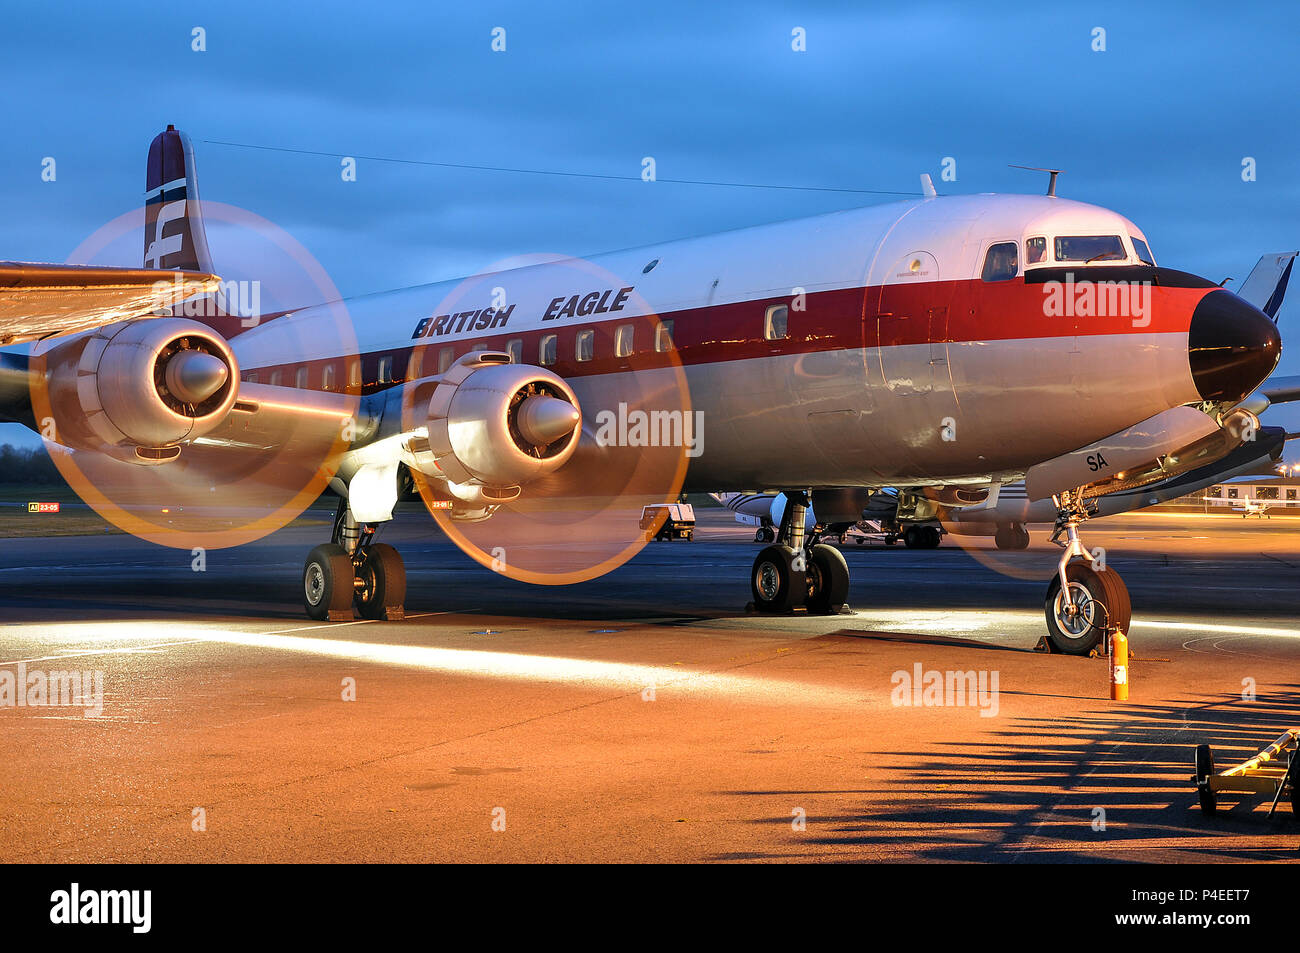 british-eagle-scheme-douglas-dc-6-vintage-airliner-plane-at-coventry-airport-uk-running-its-engines-at-dusk-g-apsa-space-for-copy-P4EET7.jpg